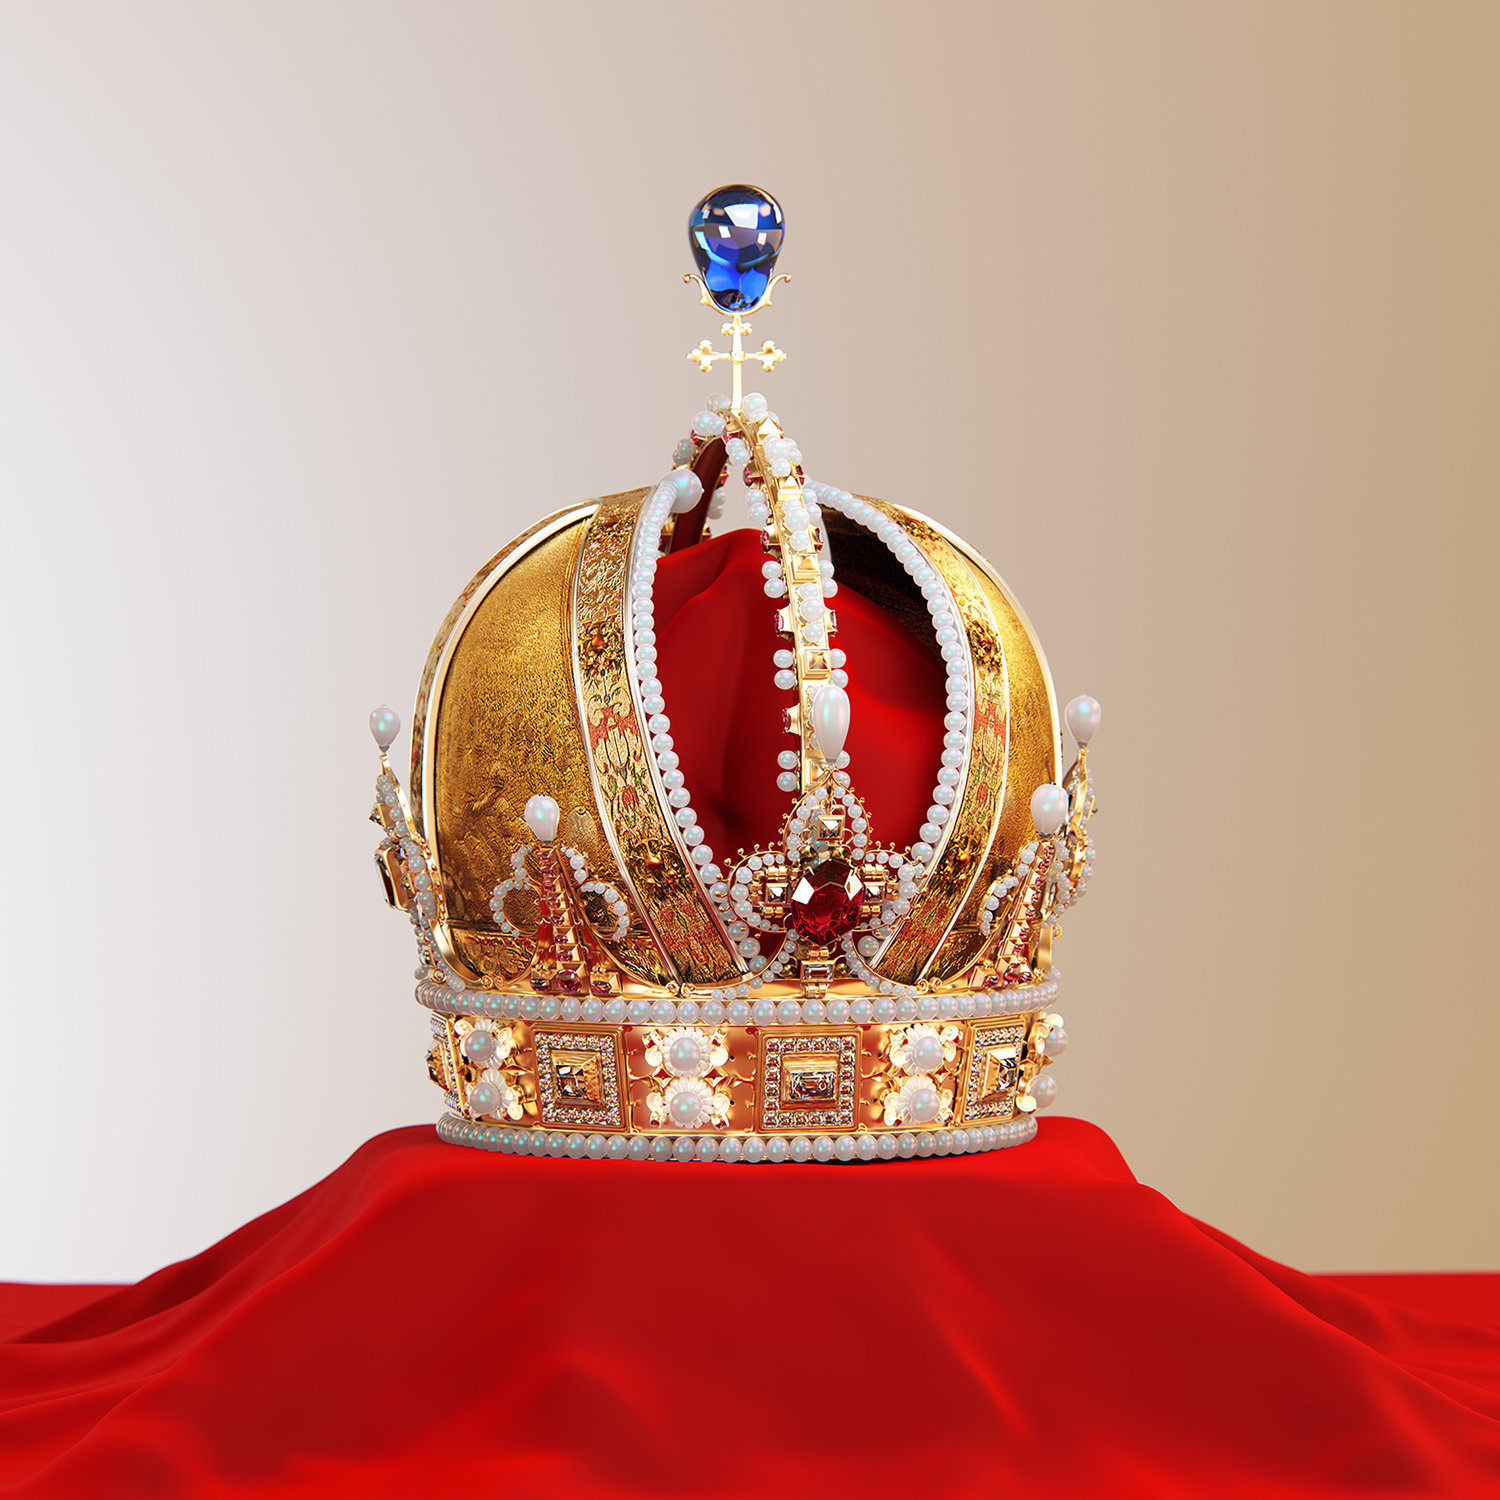 Michael marcondes imperial crown05